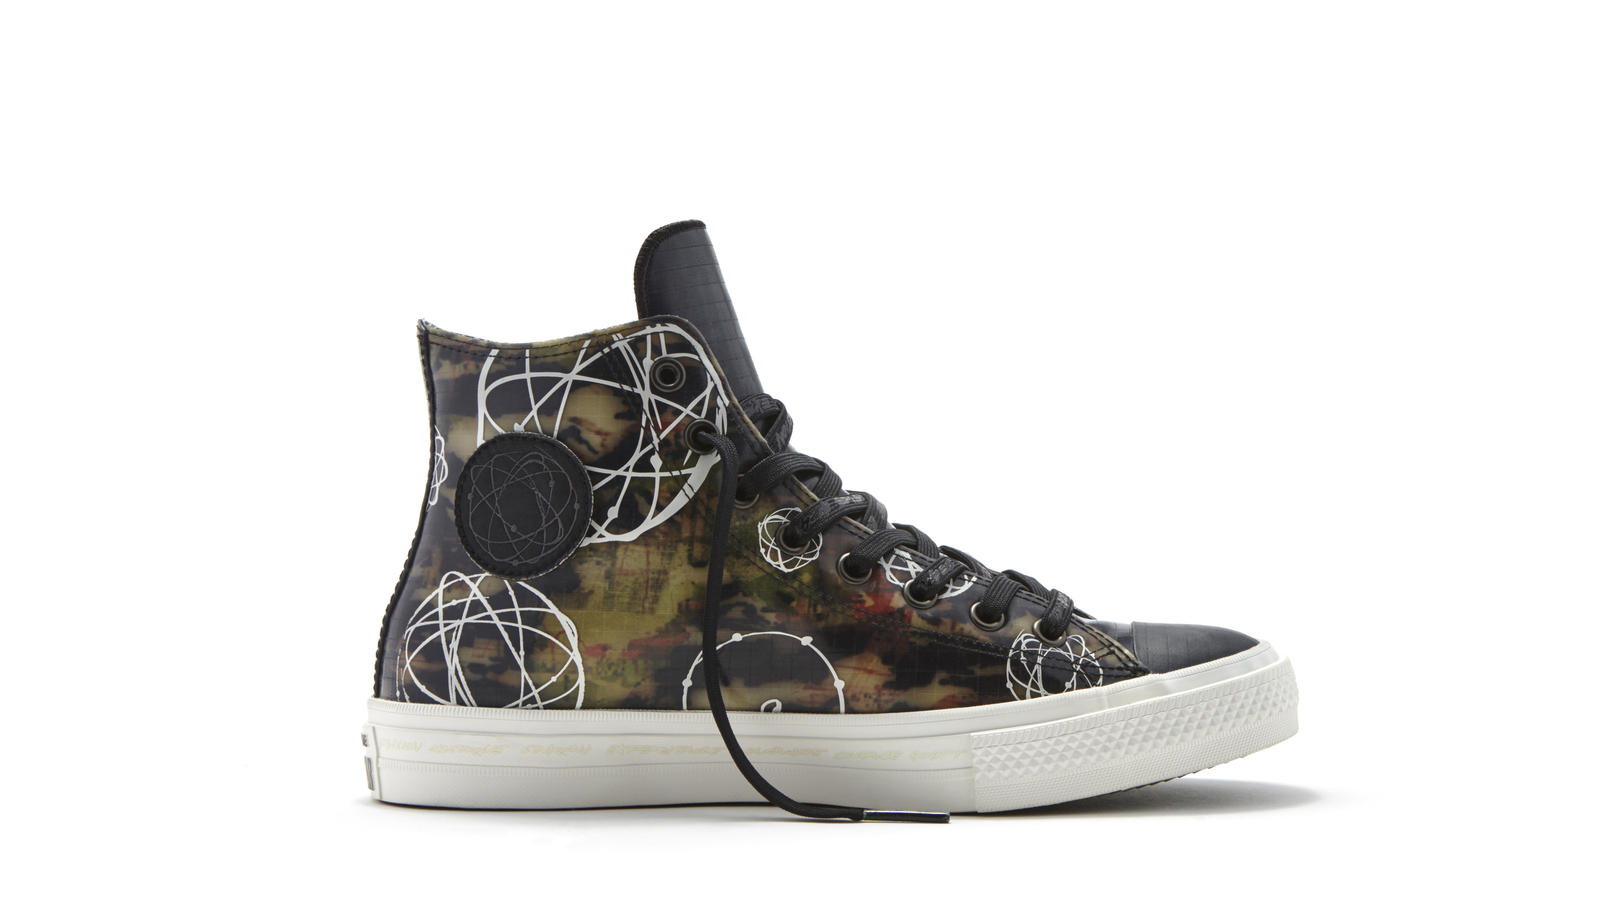 8237fb90e3503a CONVERSE UNVEILS FIRST EVER CHUCK TAYLOR ALL STAR II COLLABORATION ...